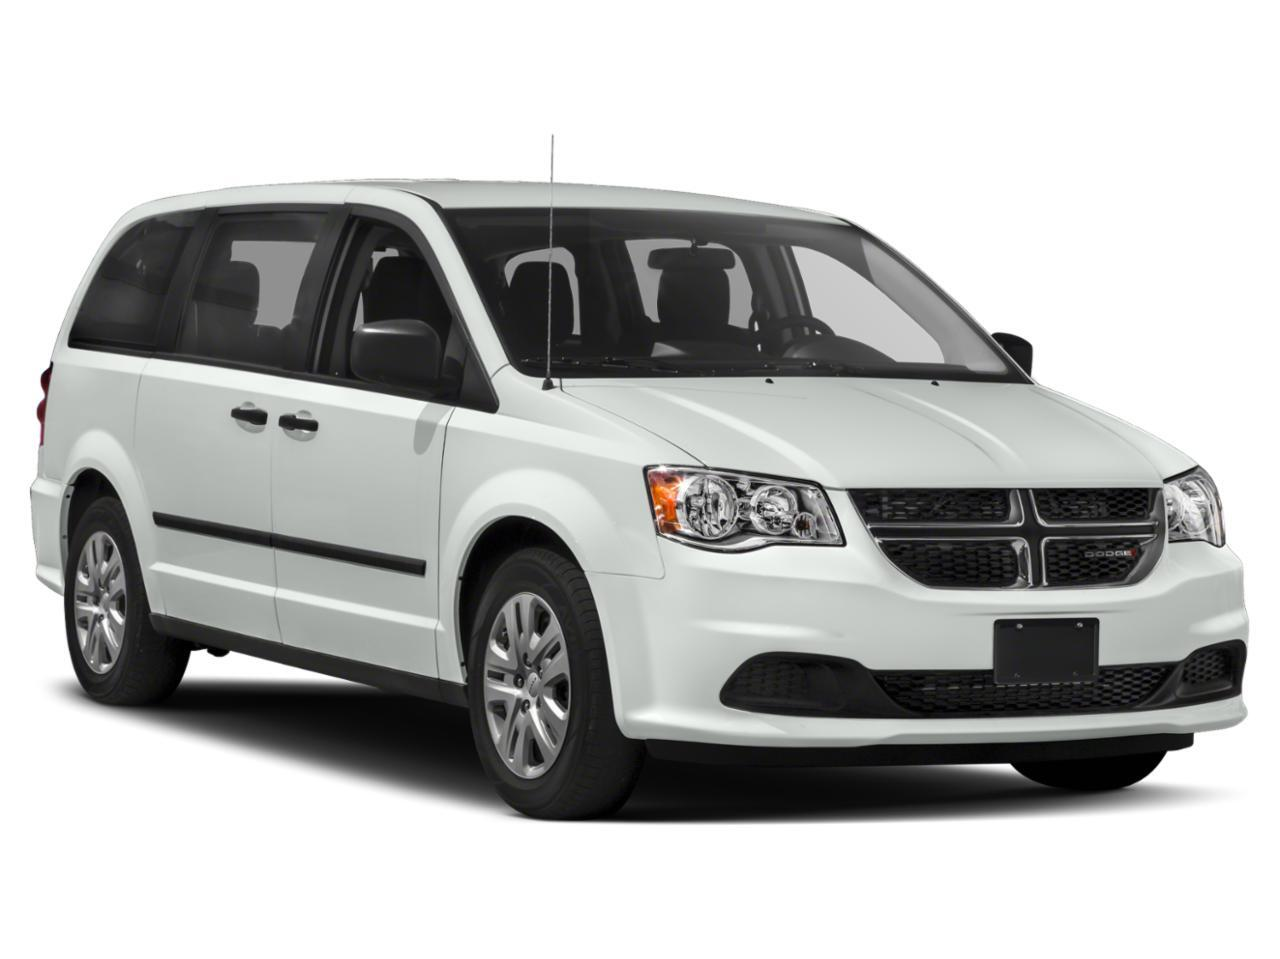 2020 Dodge Grand Caravan SE PLUS (NOT AVAILABLE IN ALL 50 STATES) Oshkosh WI